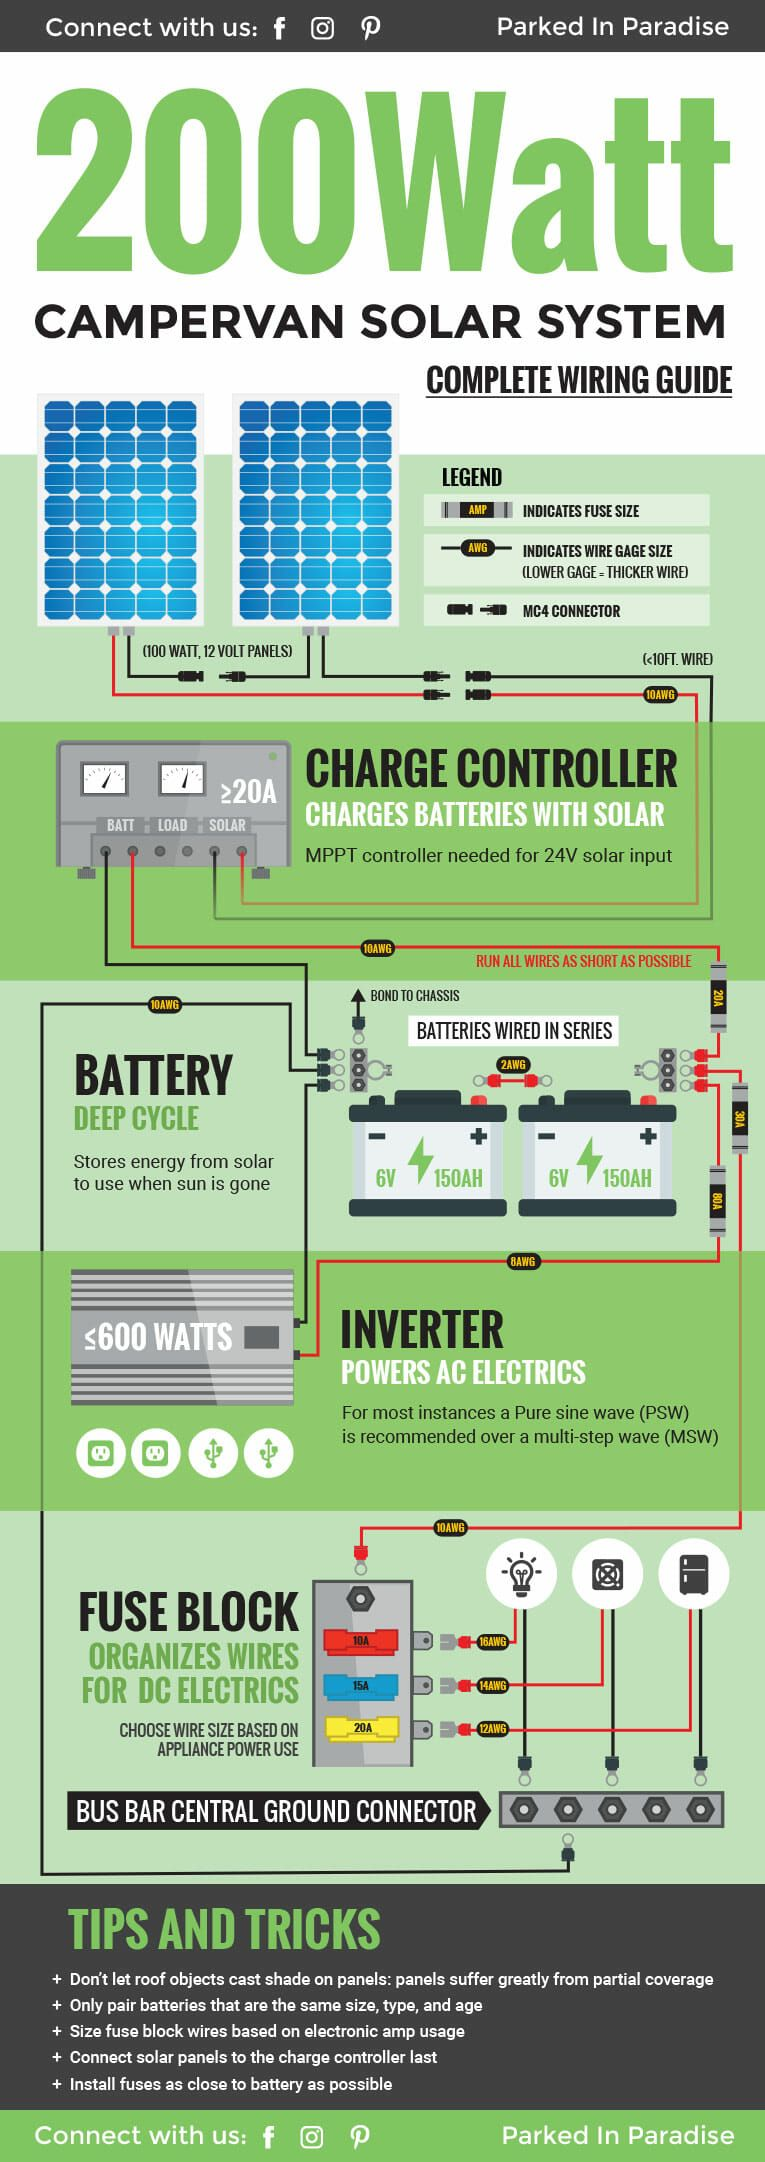 Complete DIY wiring guide for a 200 watt solar panel system Perfect for a campervan build! I